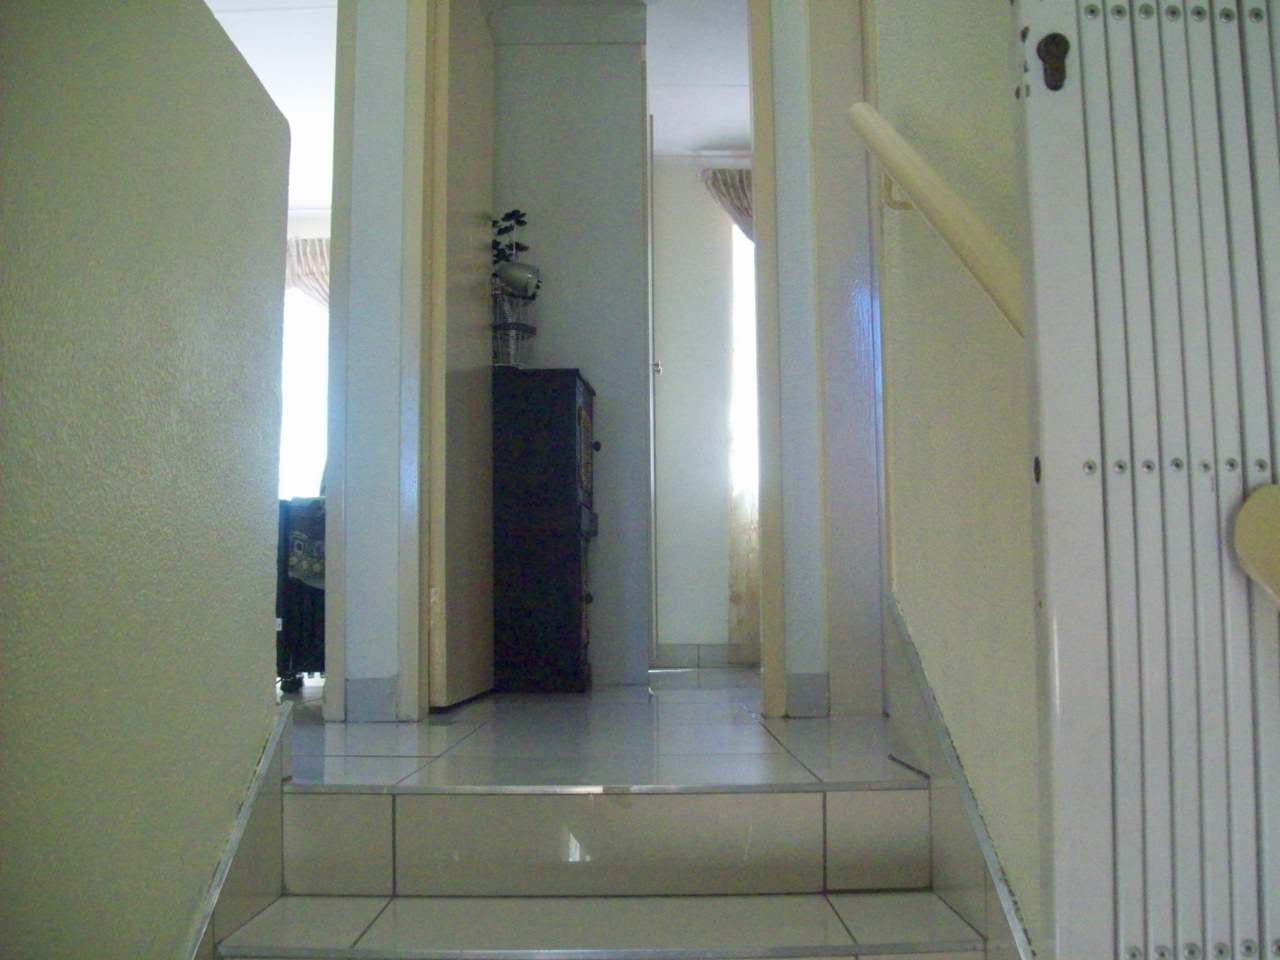 3 Bedroom Townhouse for sale in Bassonia ENT0071278 : photo#25